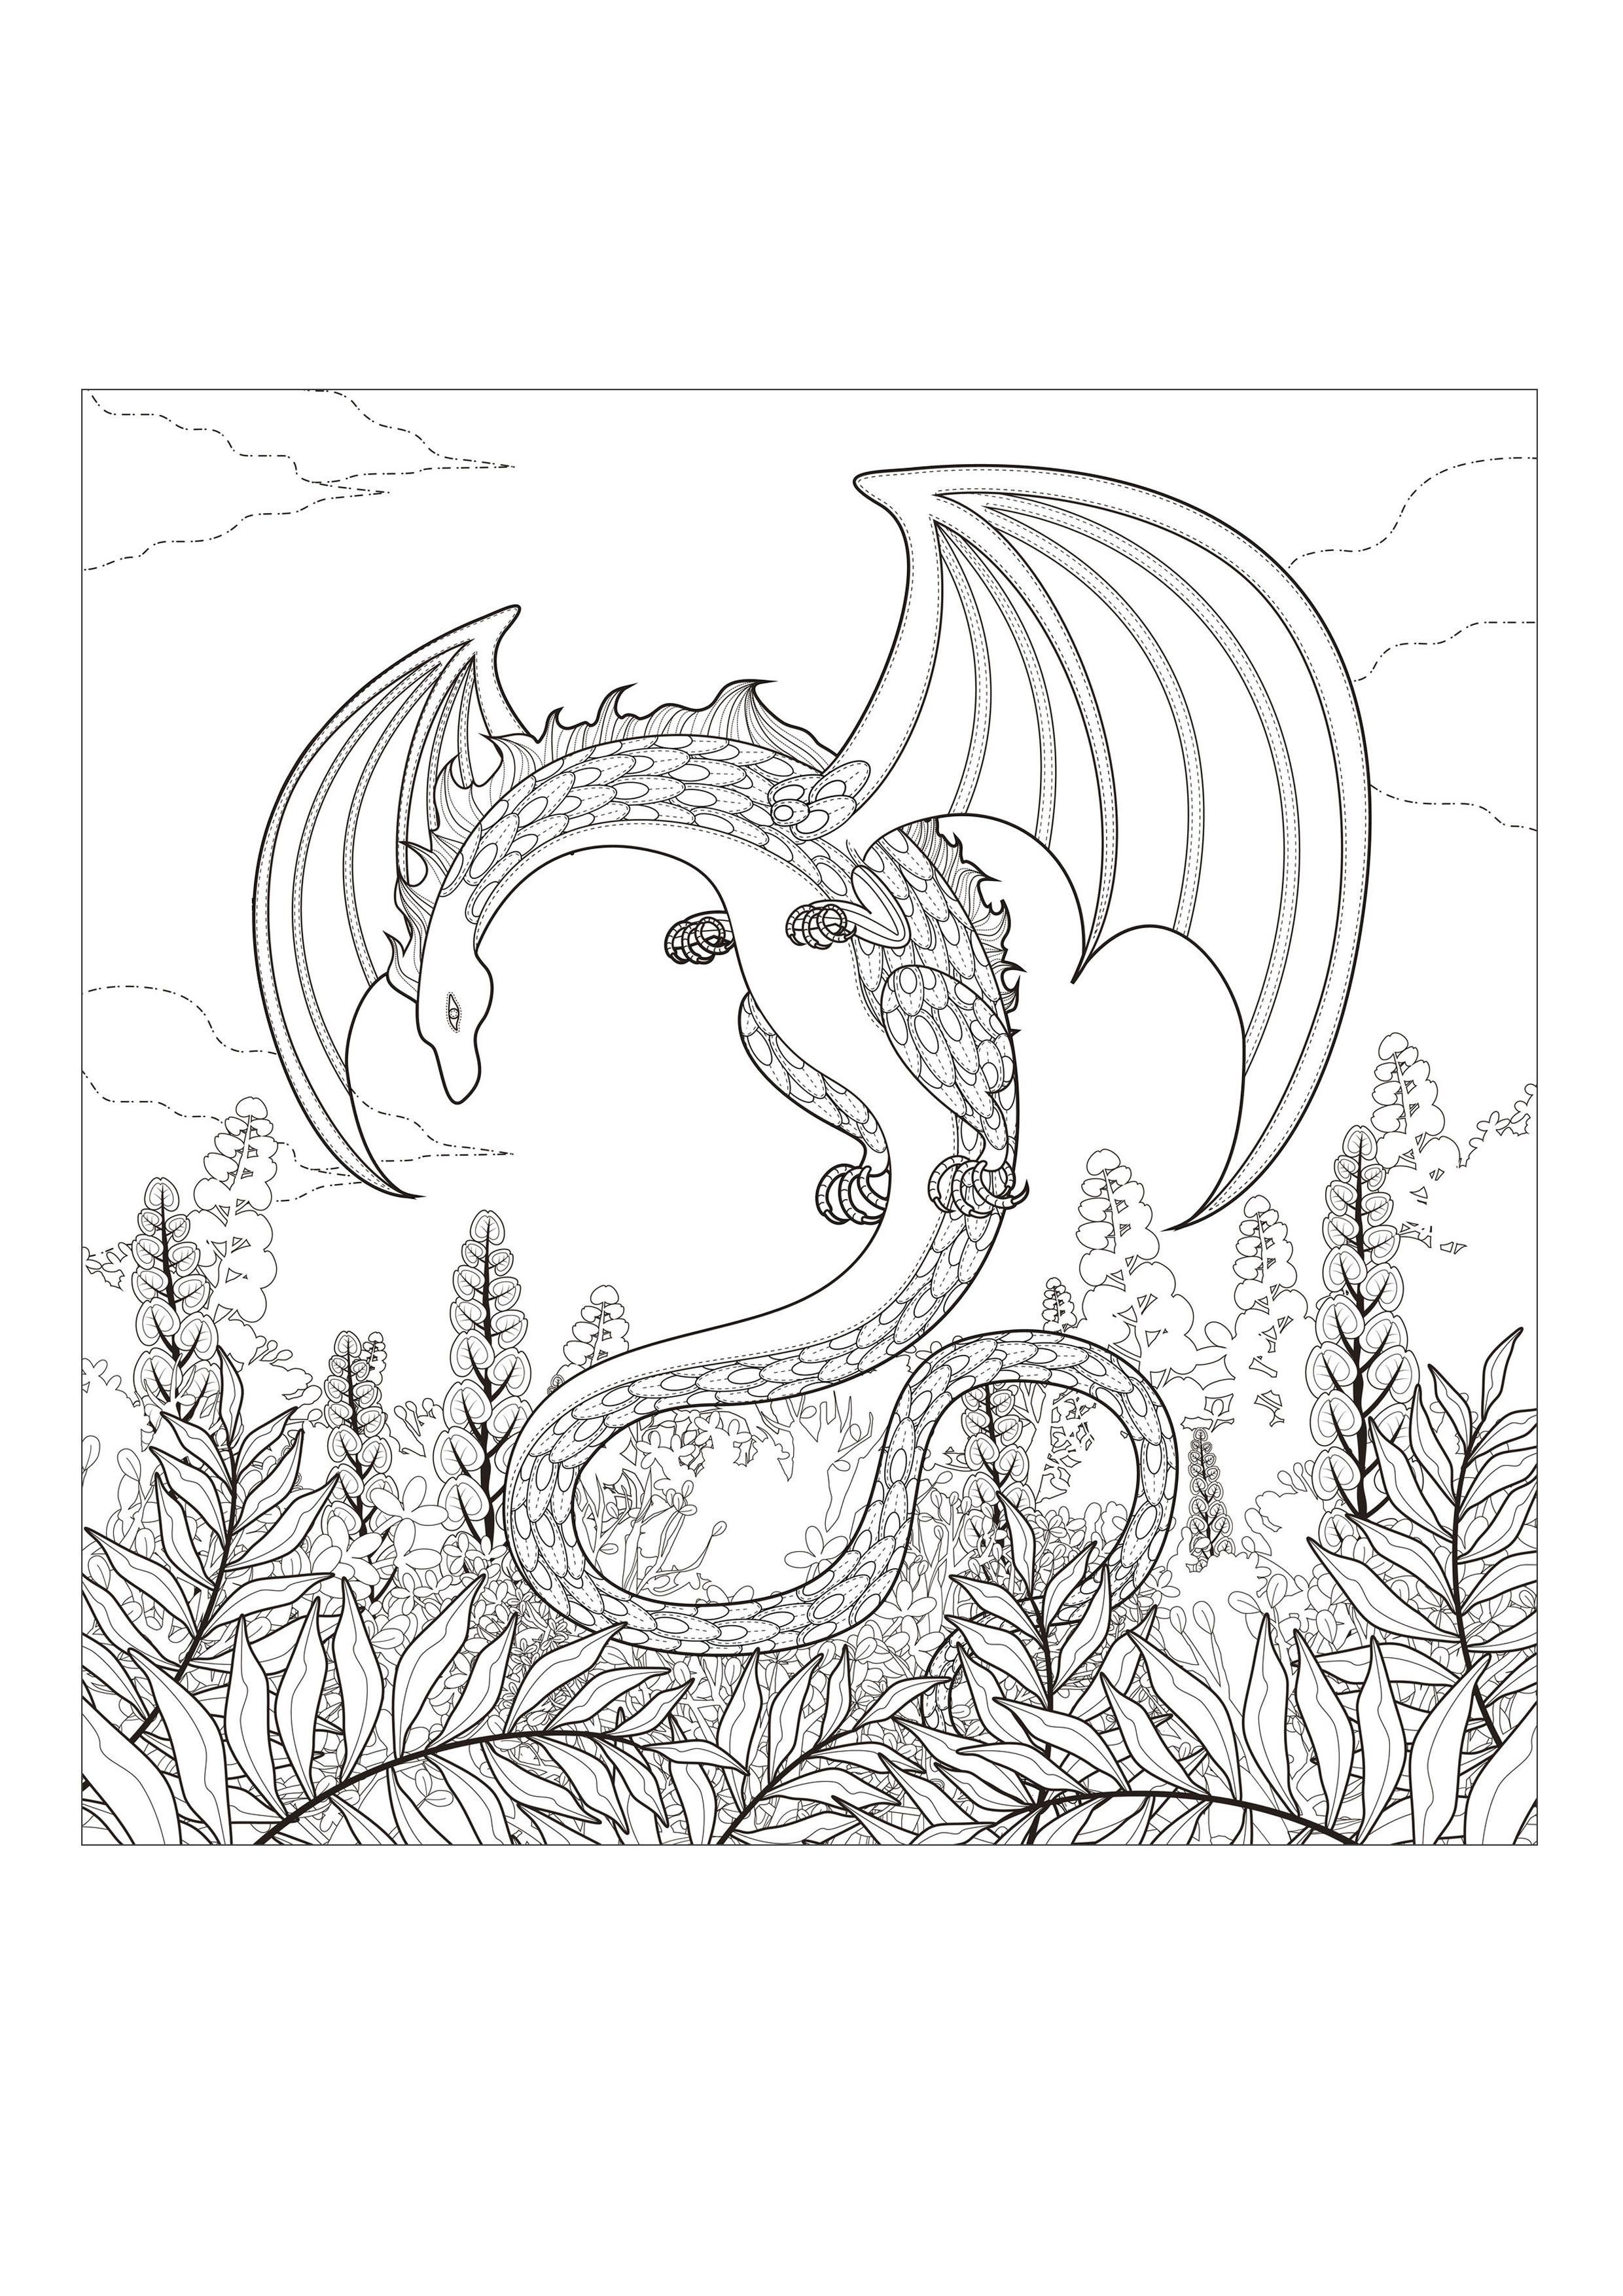 Do You Trust About Dragons From The Gallery Myths Dragon Coloring Page Monster Coloring Pages Coloring Pages